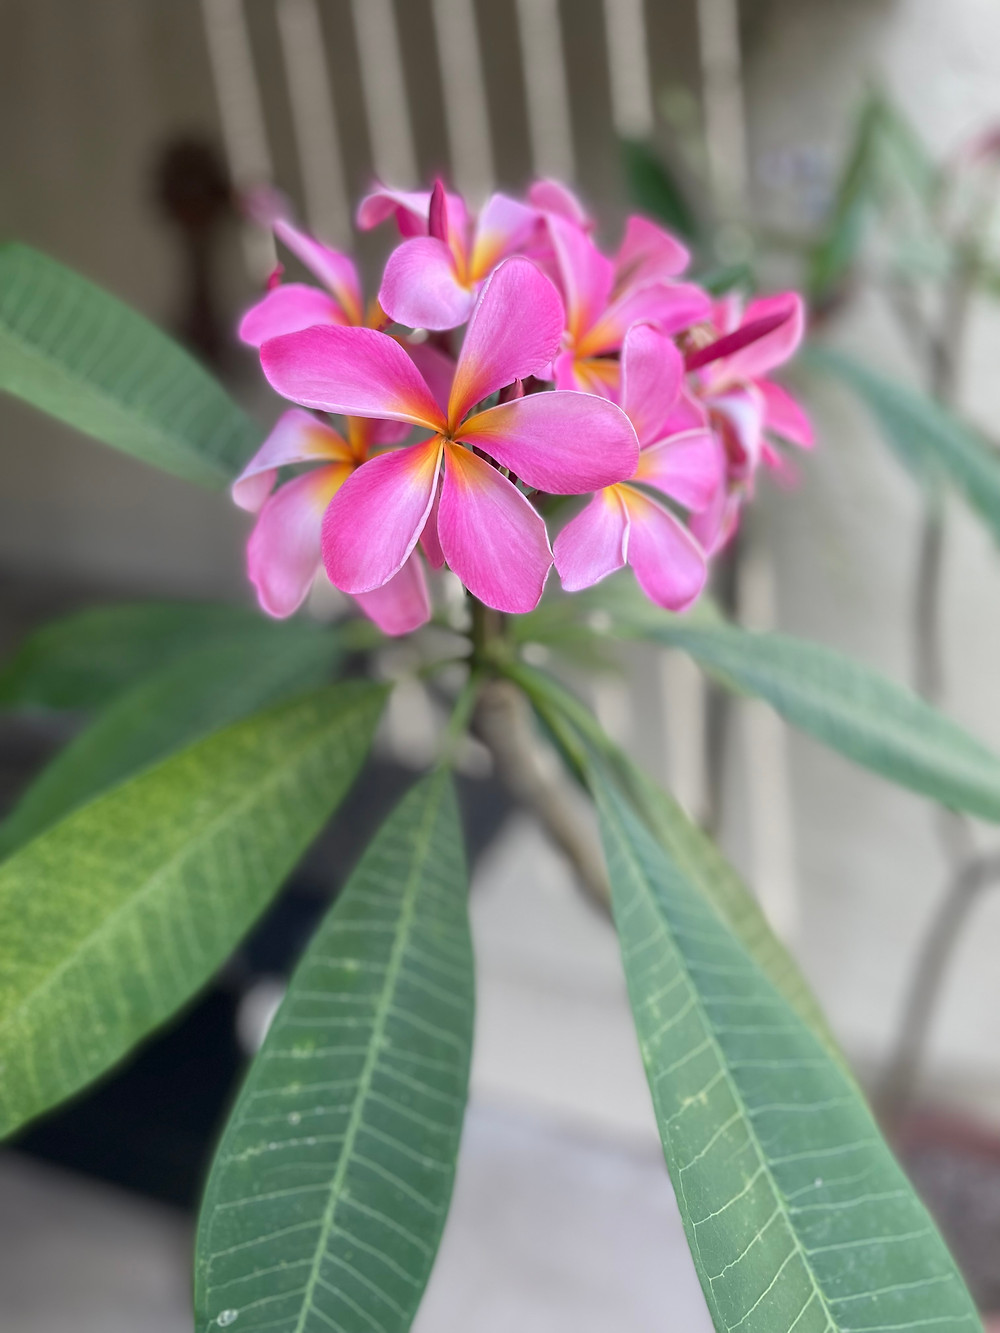 A cluster of plumeria flowers. The flowers have 5 petals which are bright pink, with orange bases.